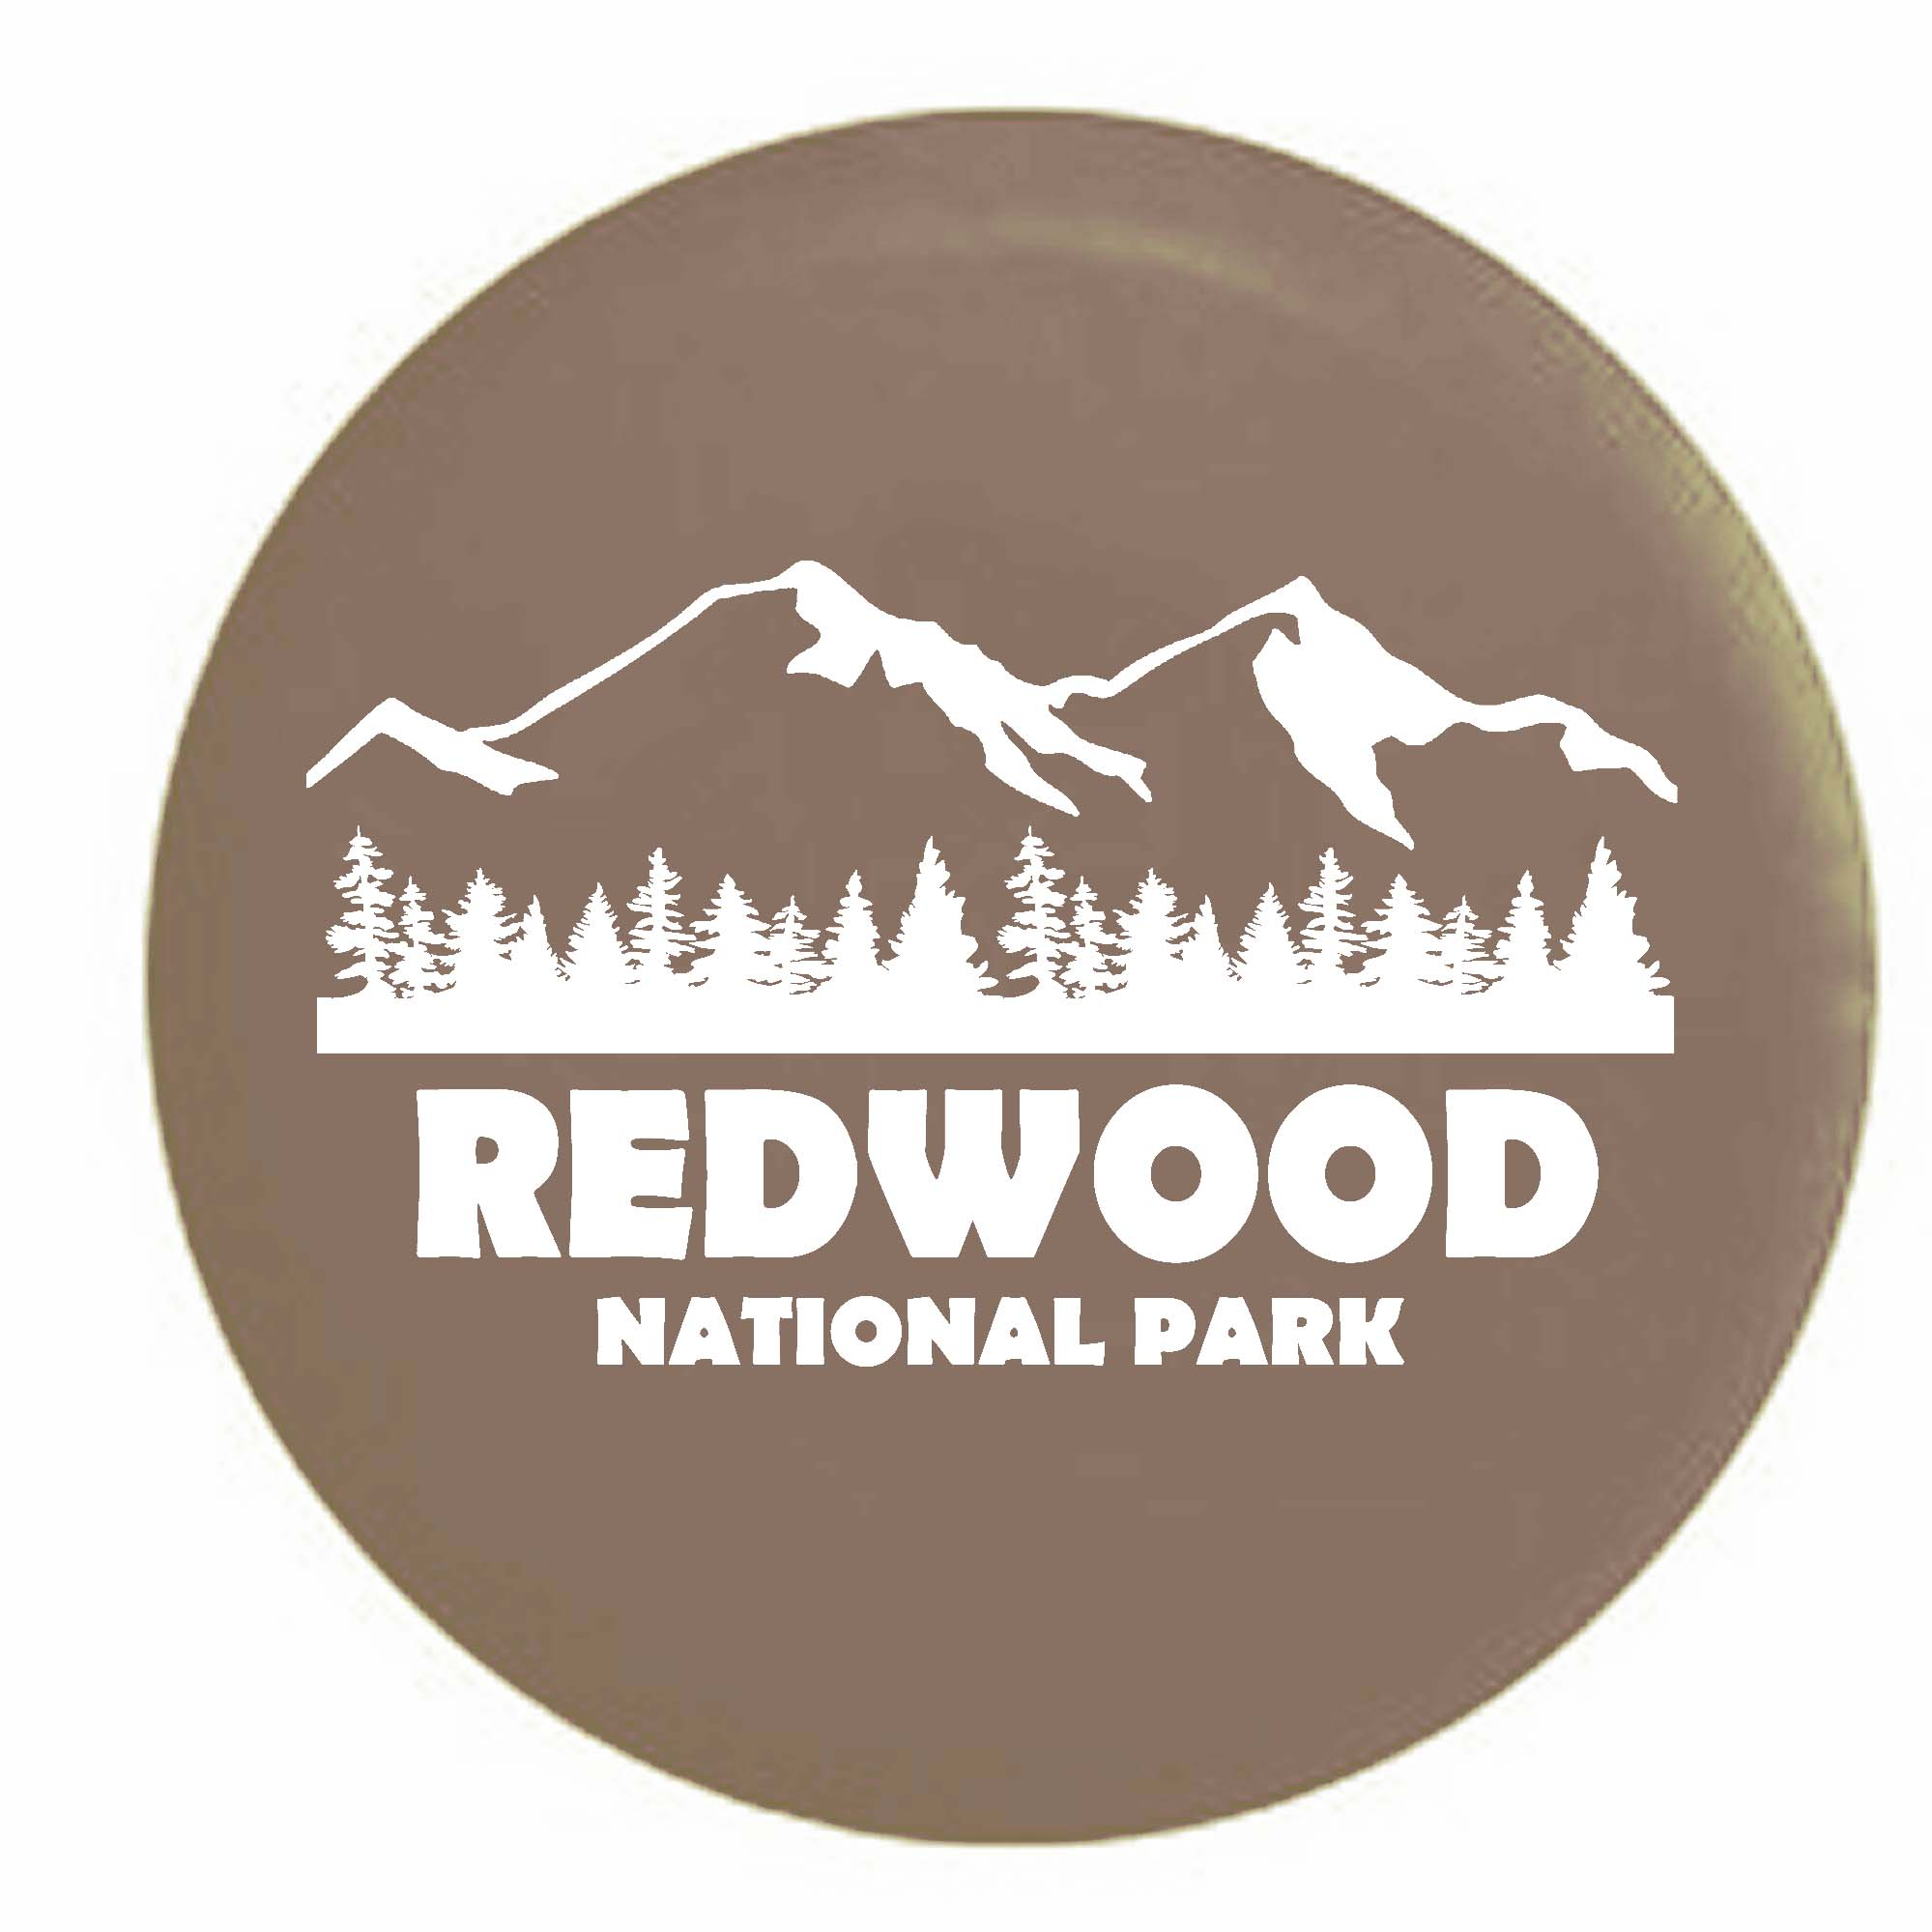 Redwood National Park California Trailer RV Spare Tire Cover Vinyl Tan-WhiteInk 29 in